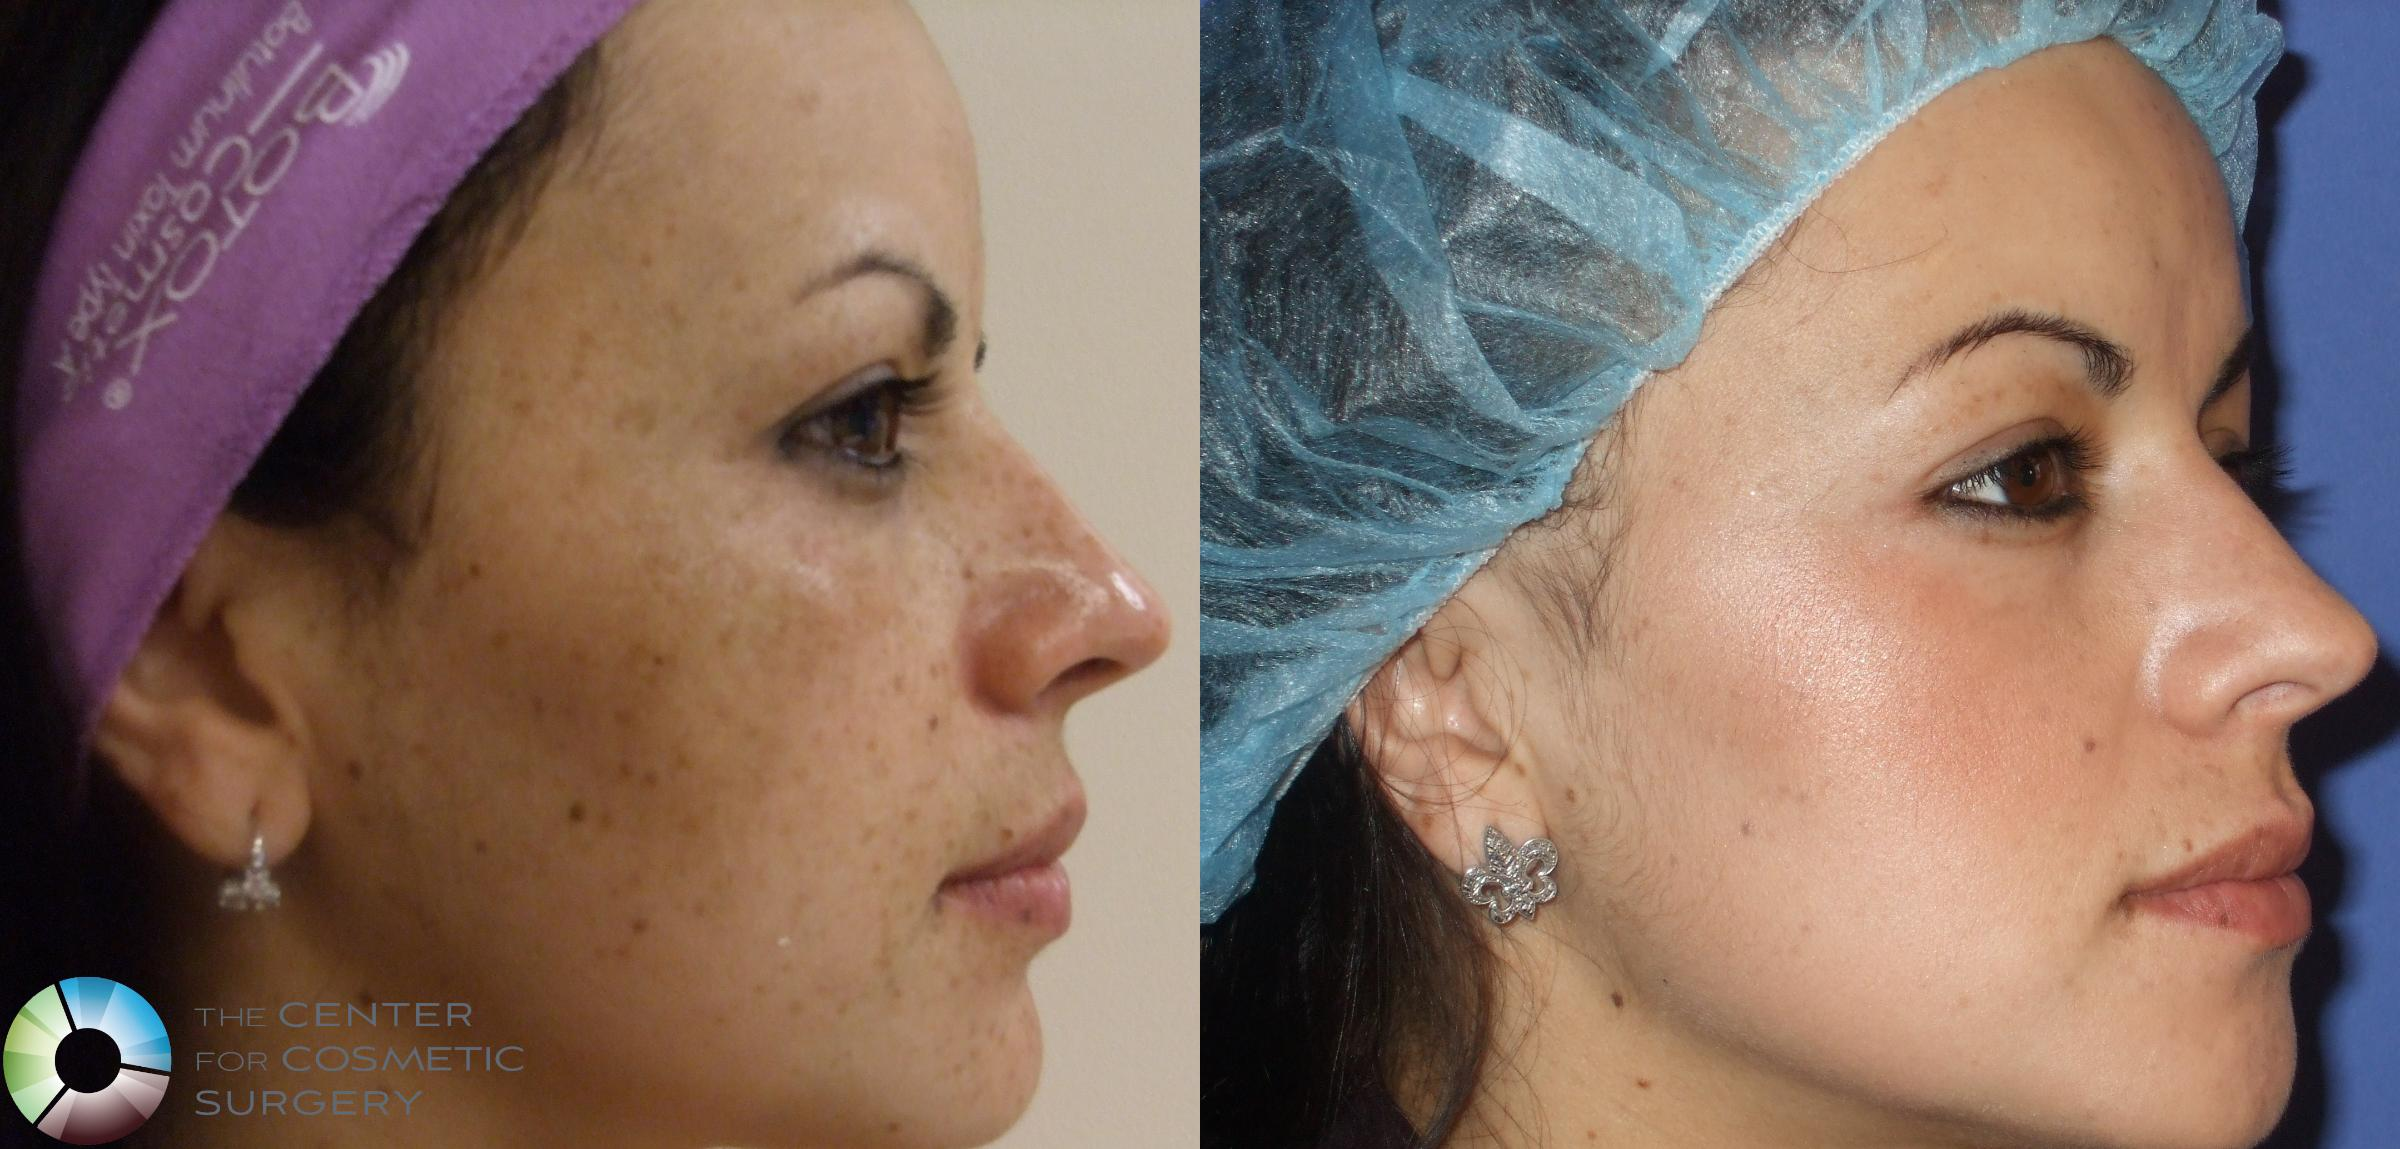 Skin Care Products Case 295 Before & After View #1 | Golden, CO | The Center for Cosmetic Surgery